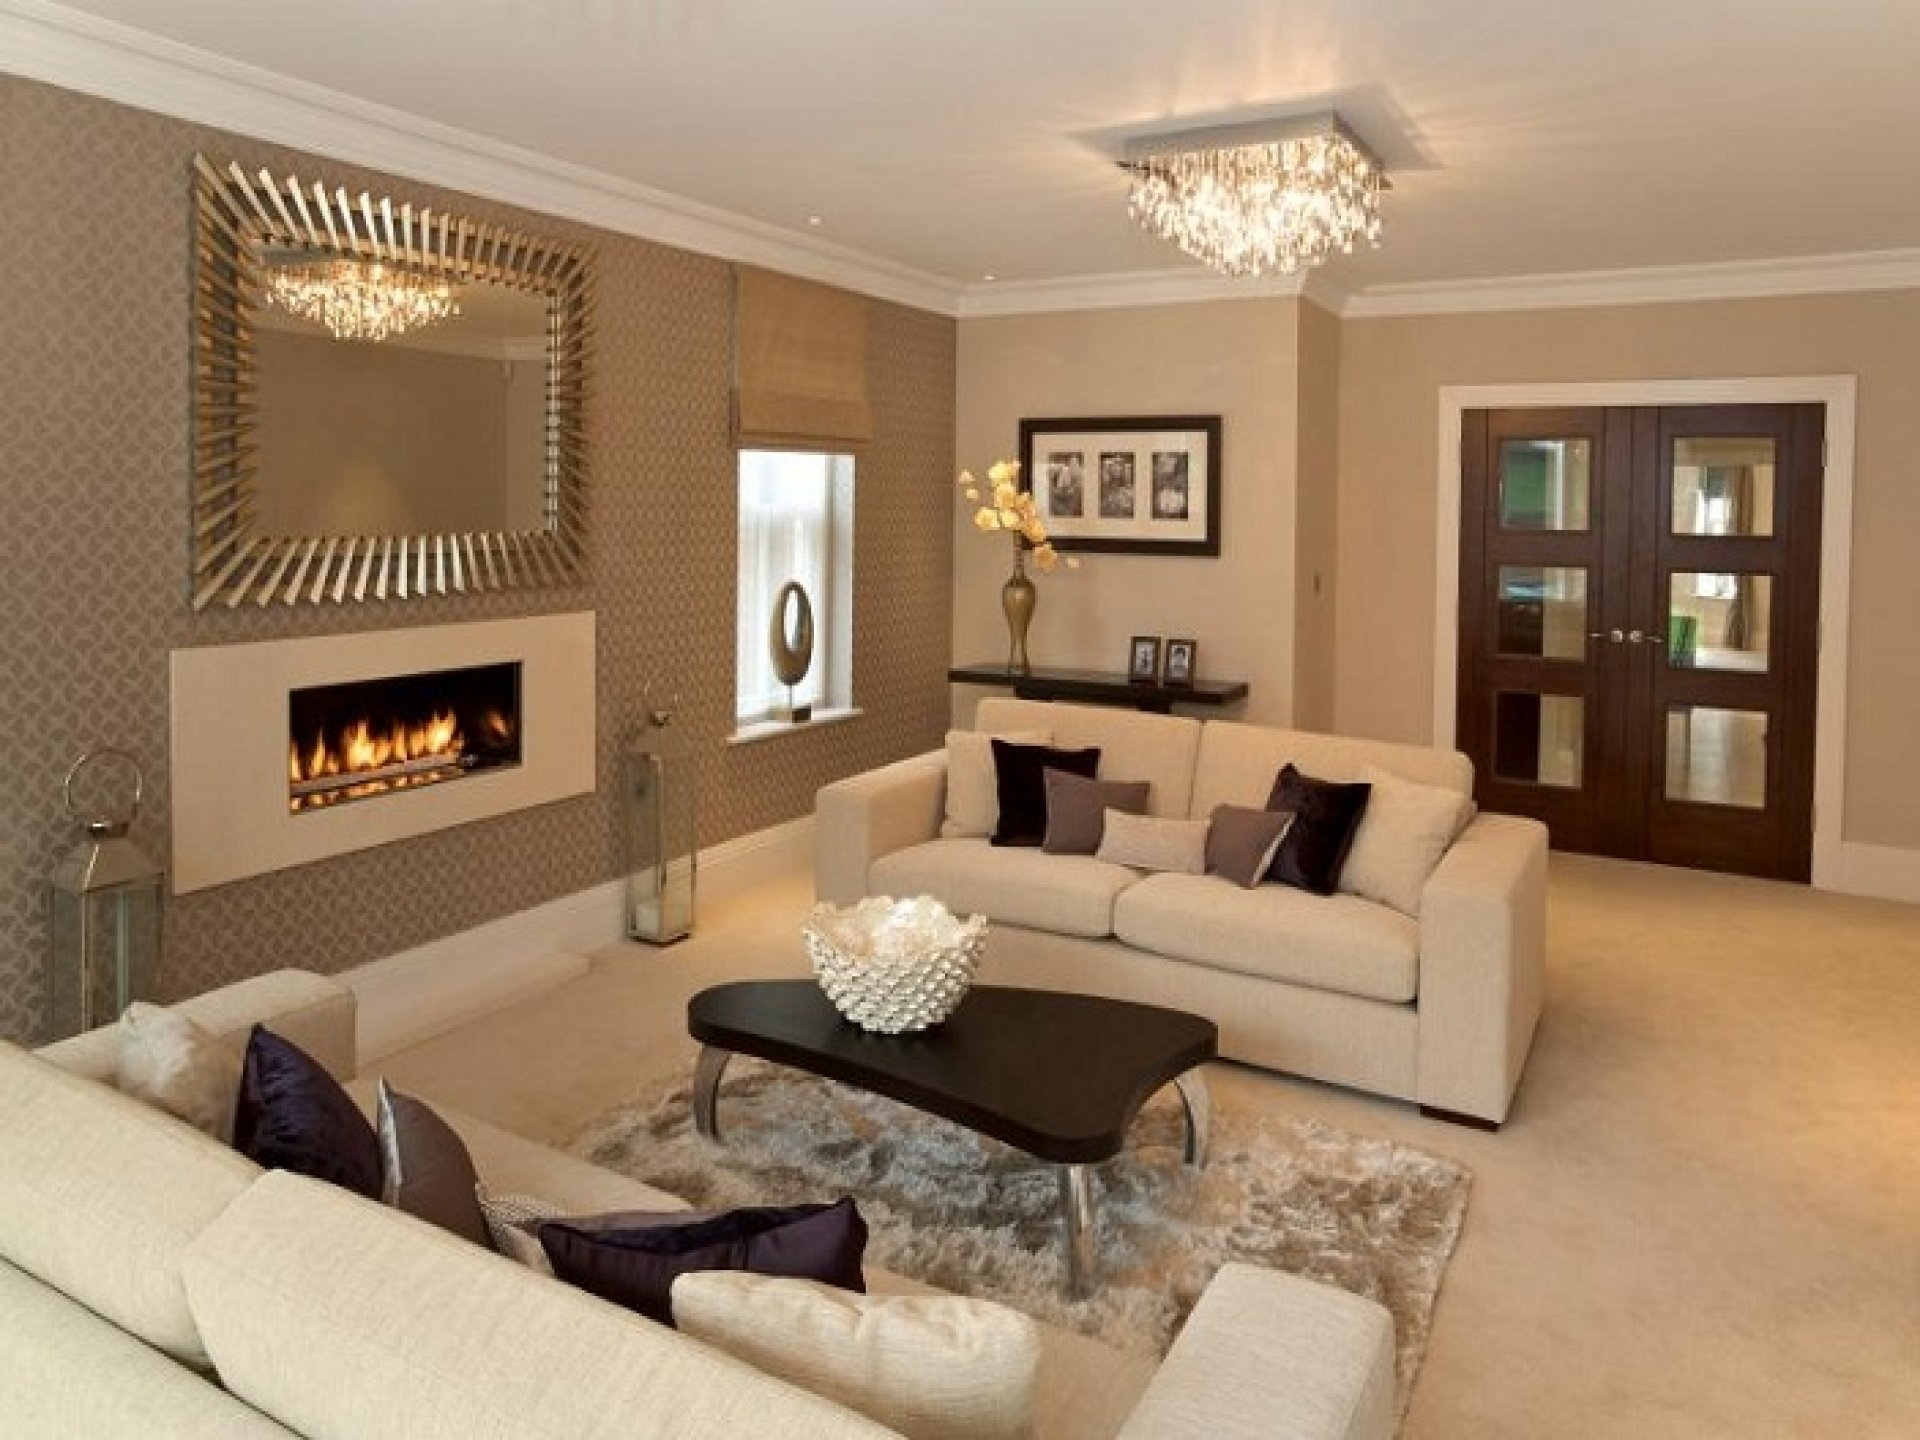 10 Attractive Ideas For Painting Living Room modern living room furniture ideas paint colors for living rooms 3 2020